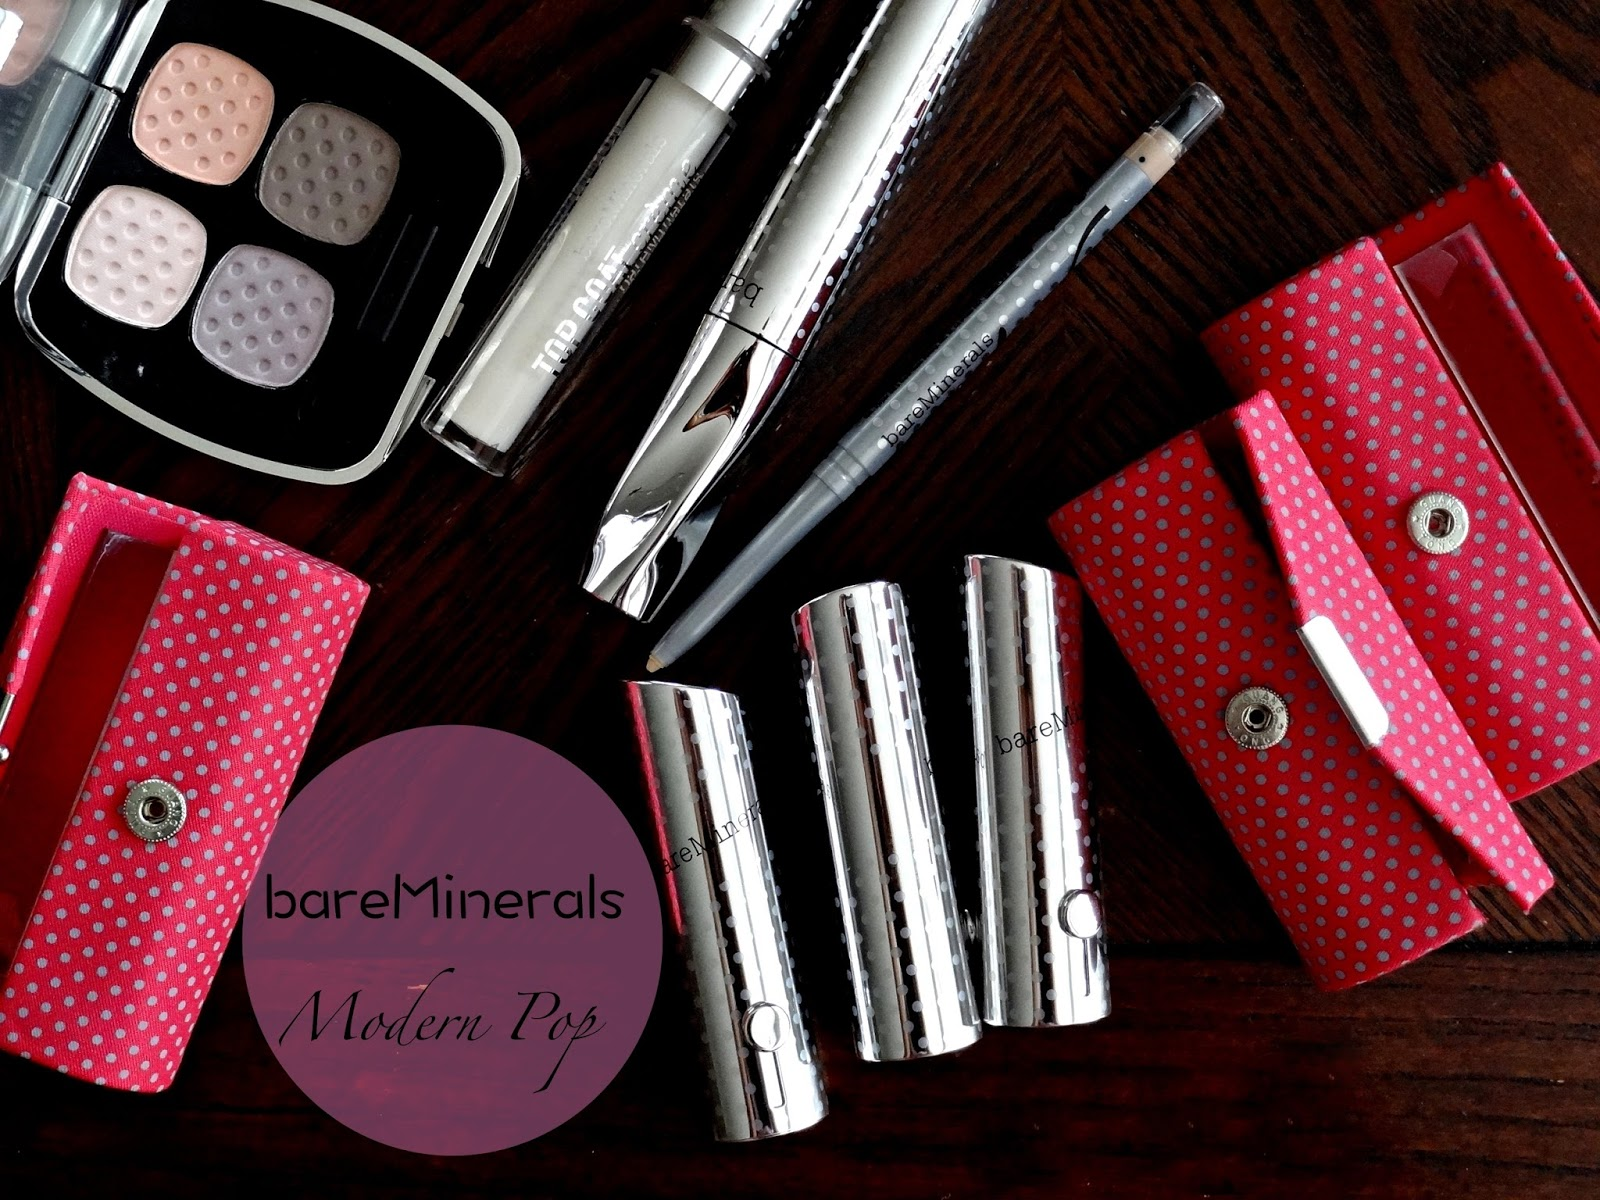 Makeup Beauty And More Bareminerals Modern Pop Spring